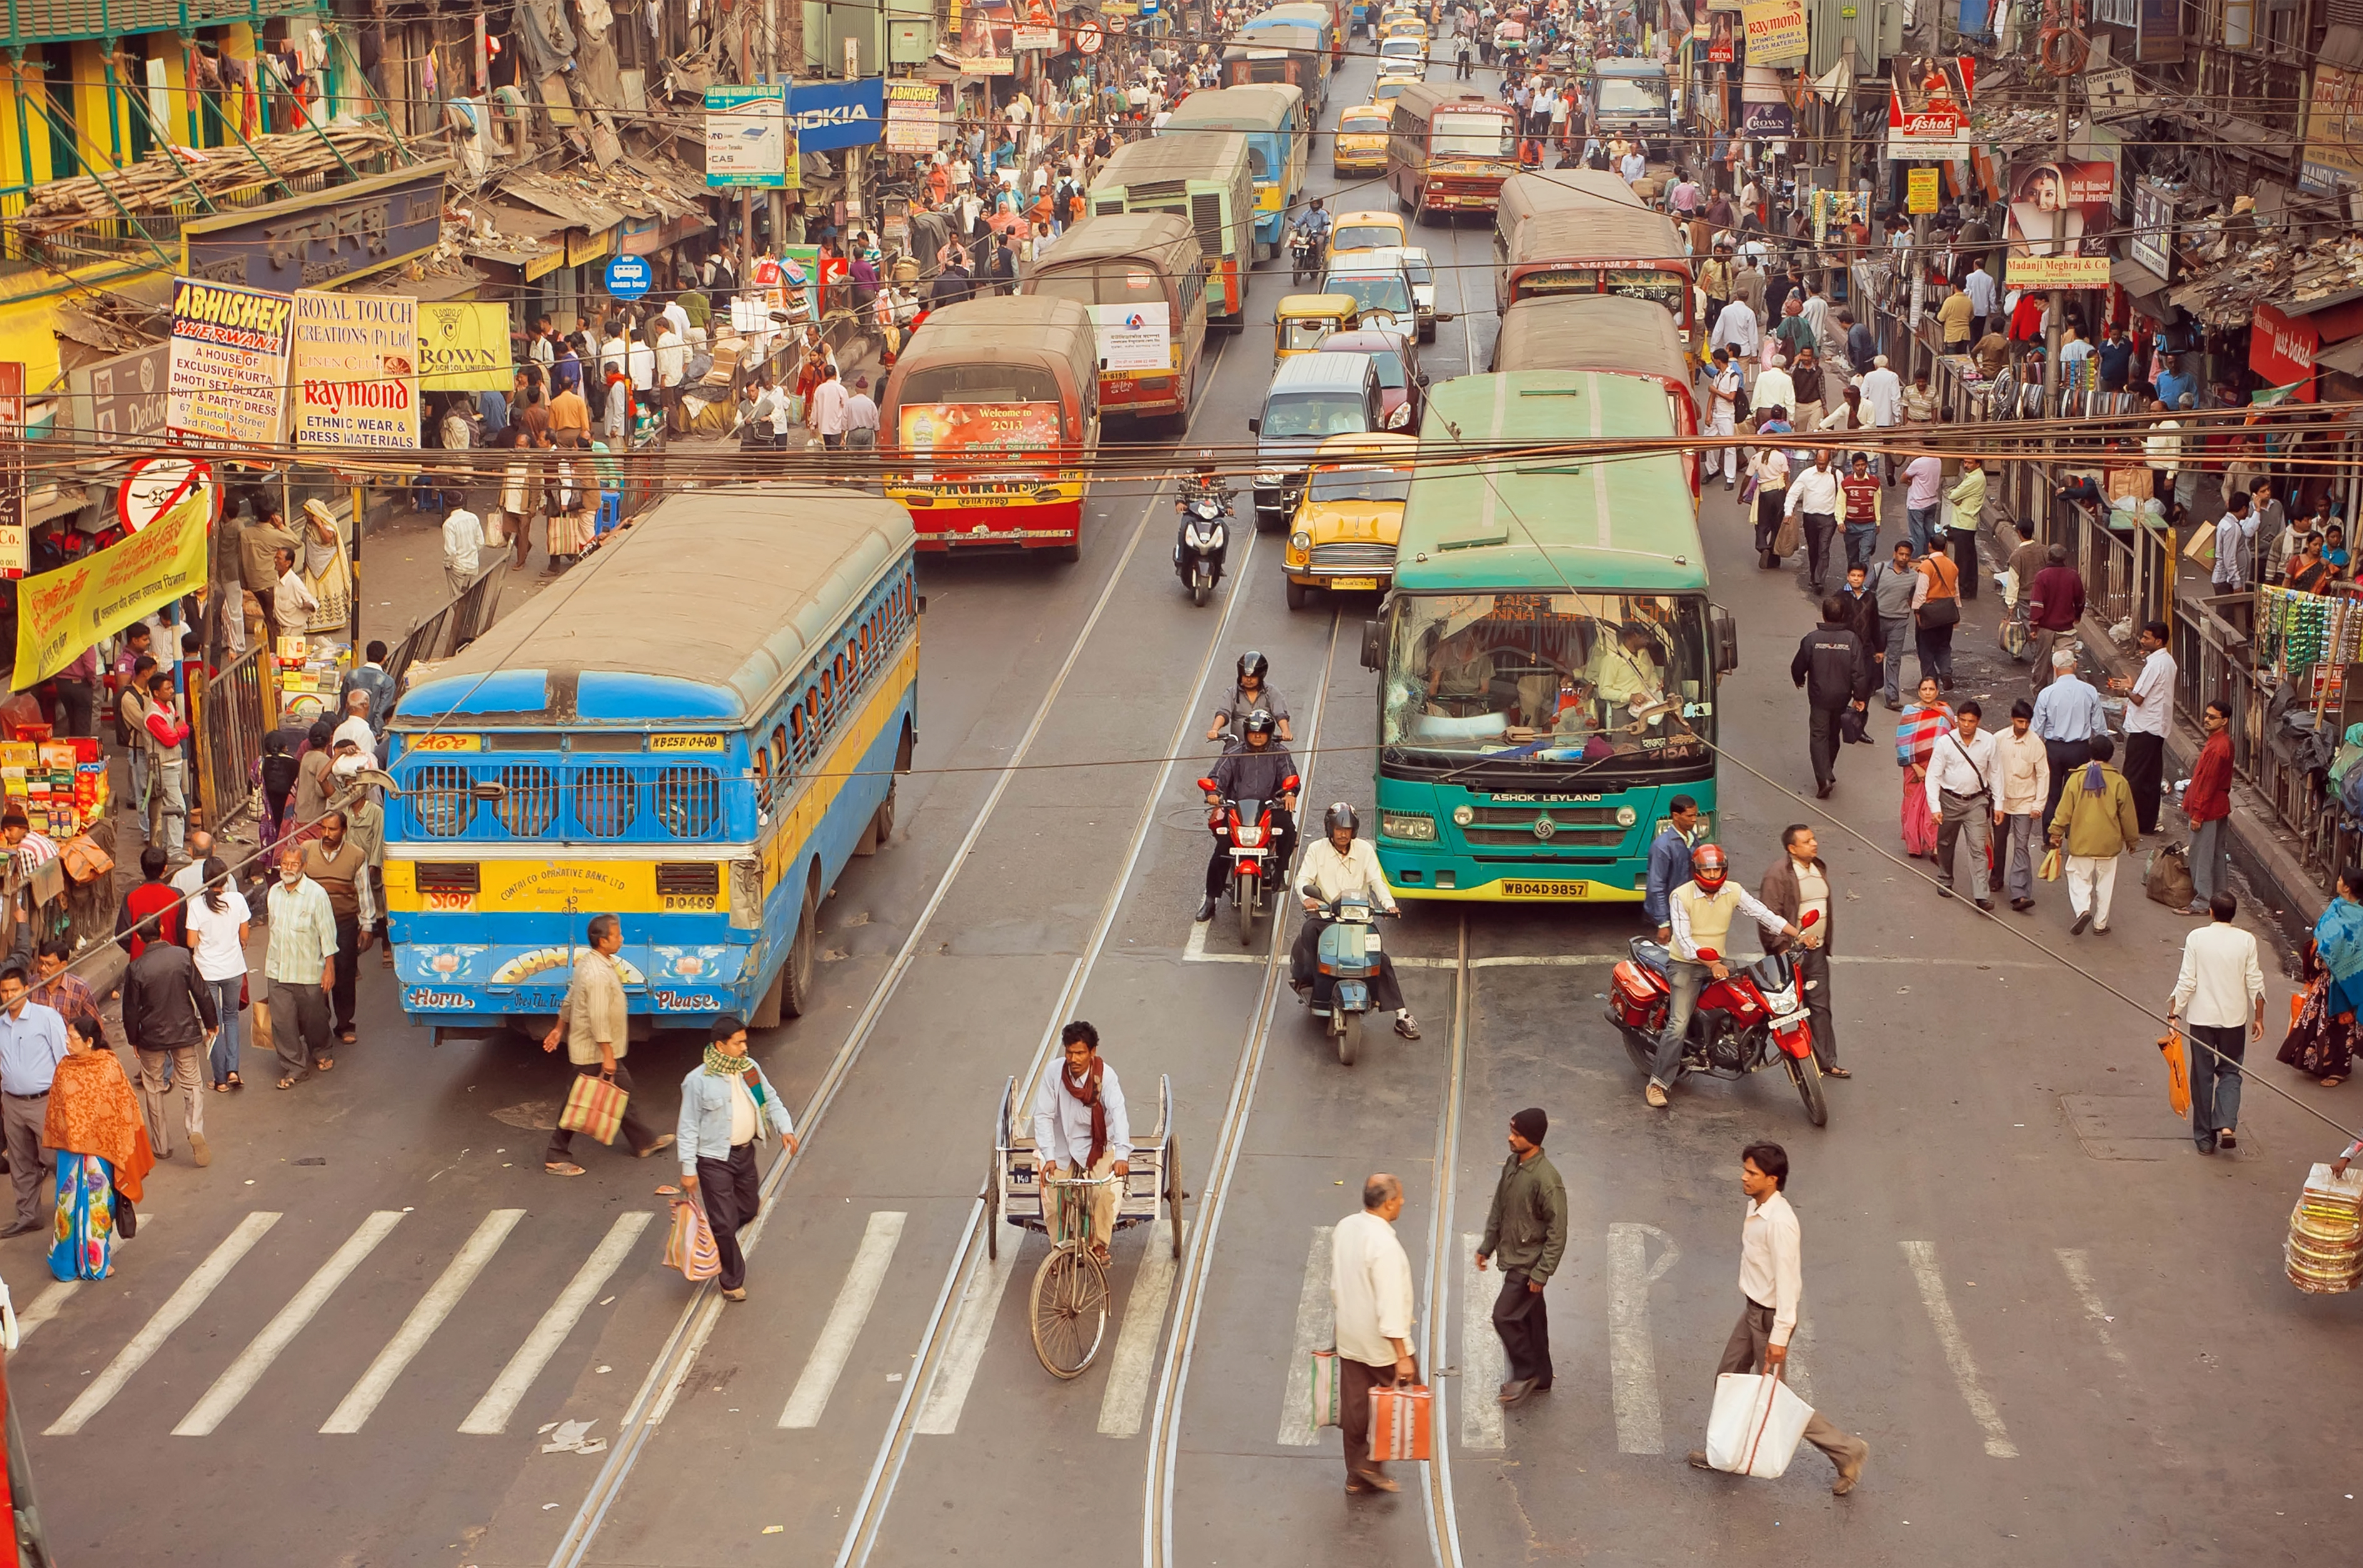 Crossroad of busy modern city in Asia with cars, bikes, walking people and buses on January 20, 2016 in Calcutta.